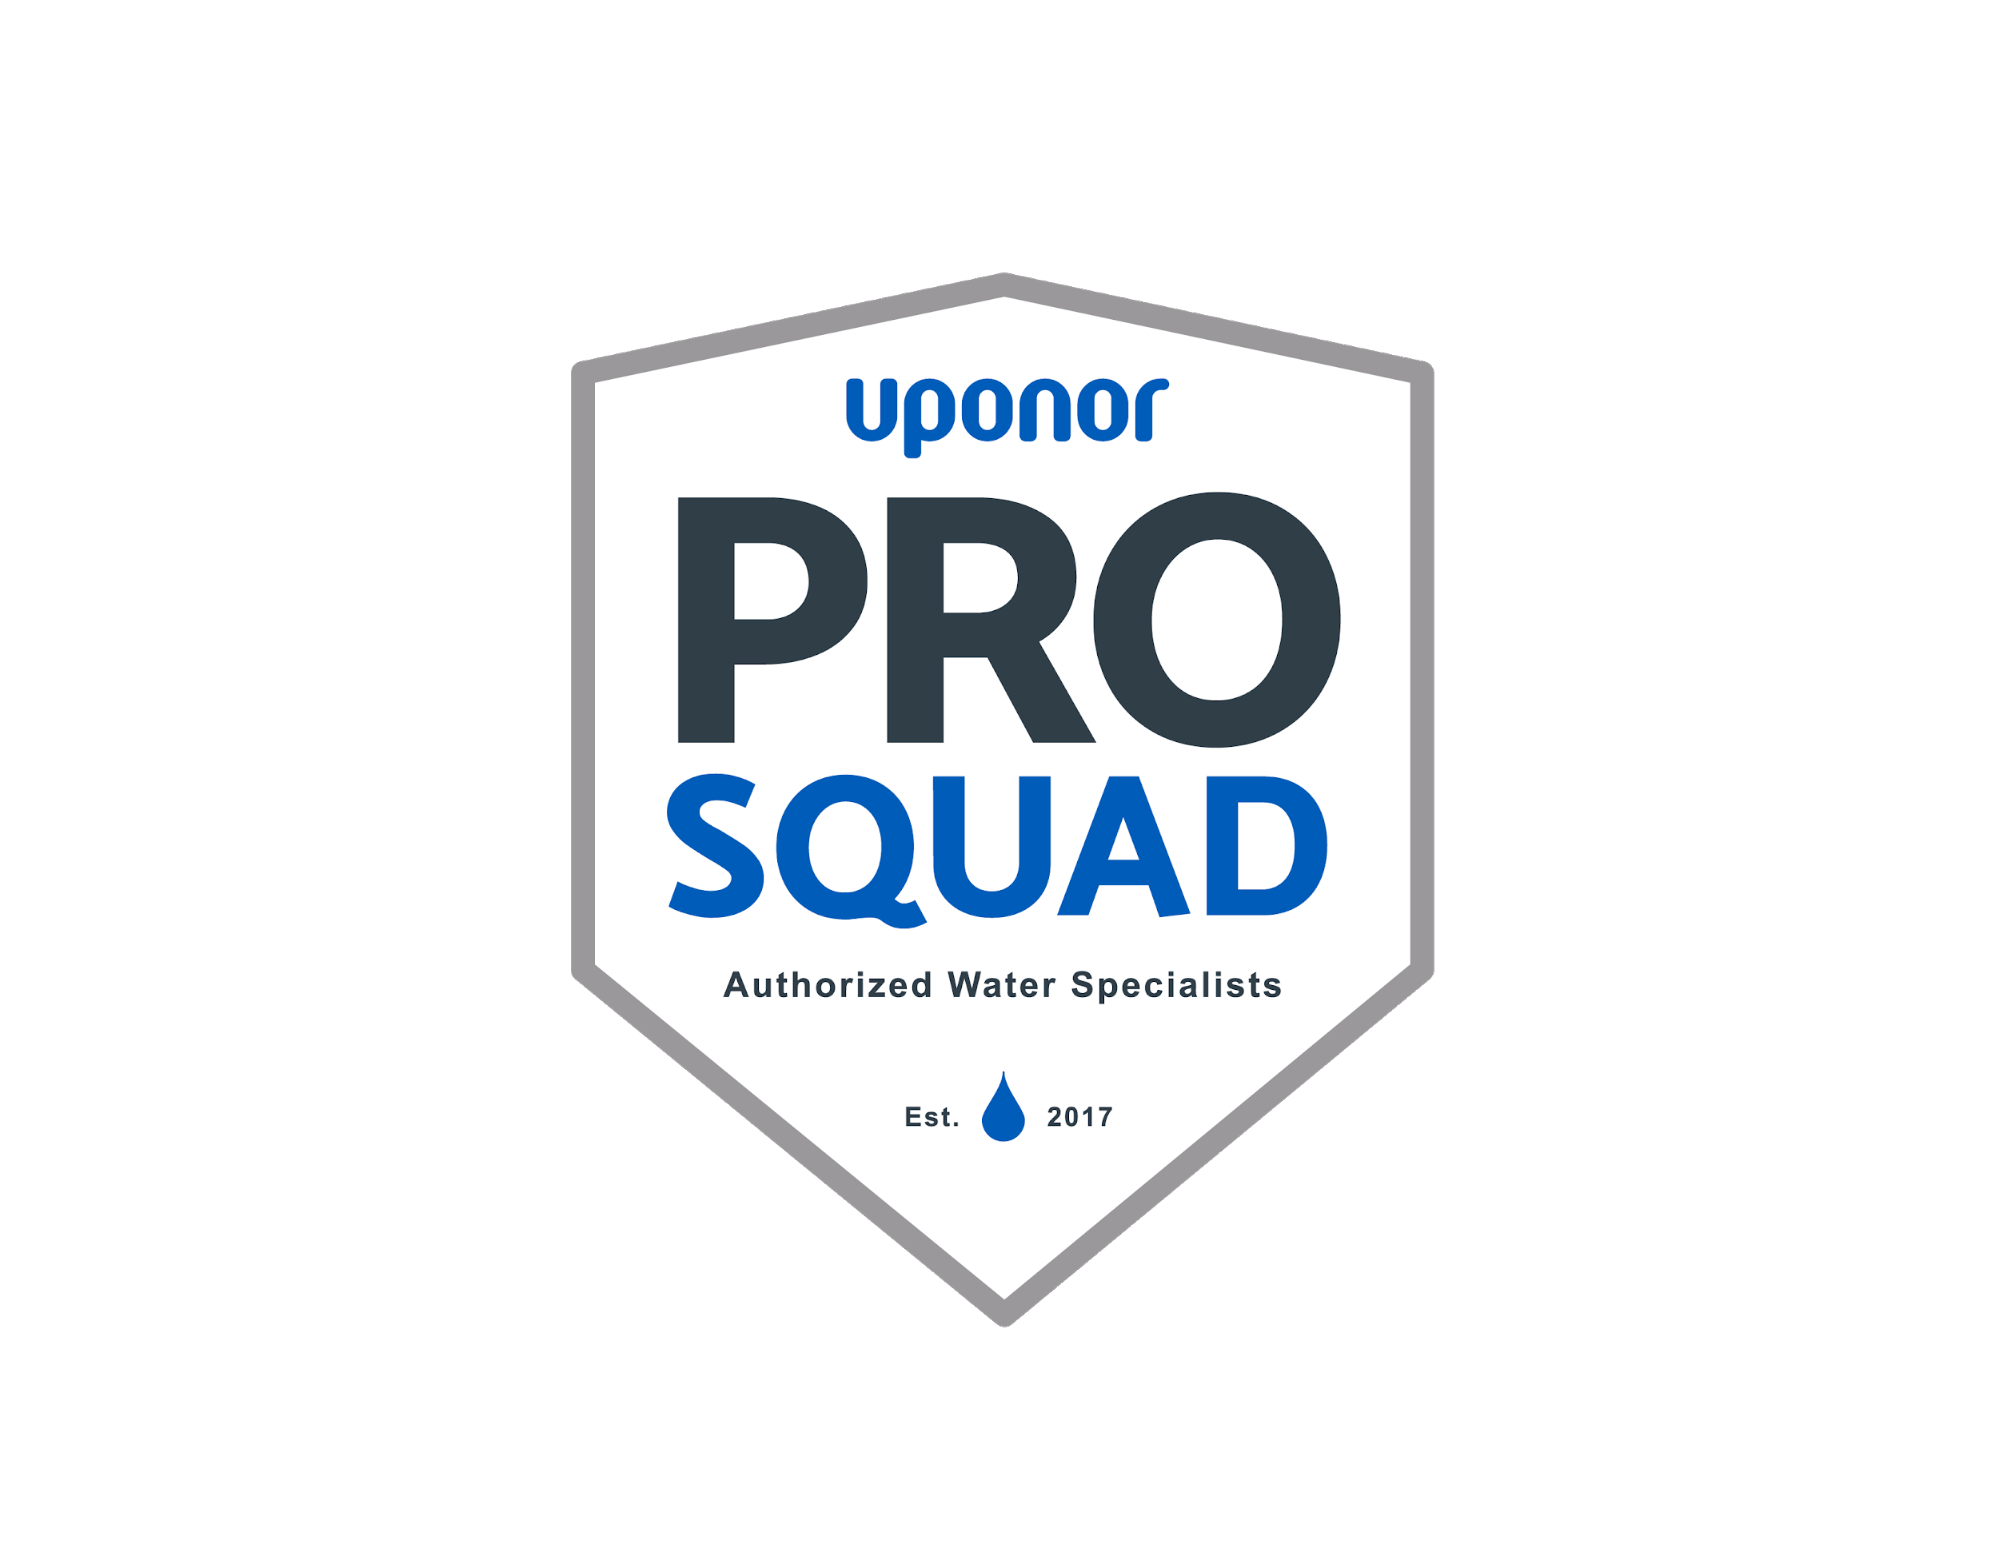 Plumber of Tucson is an Uponor Pro Squad Installer